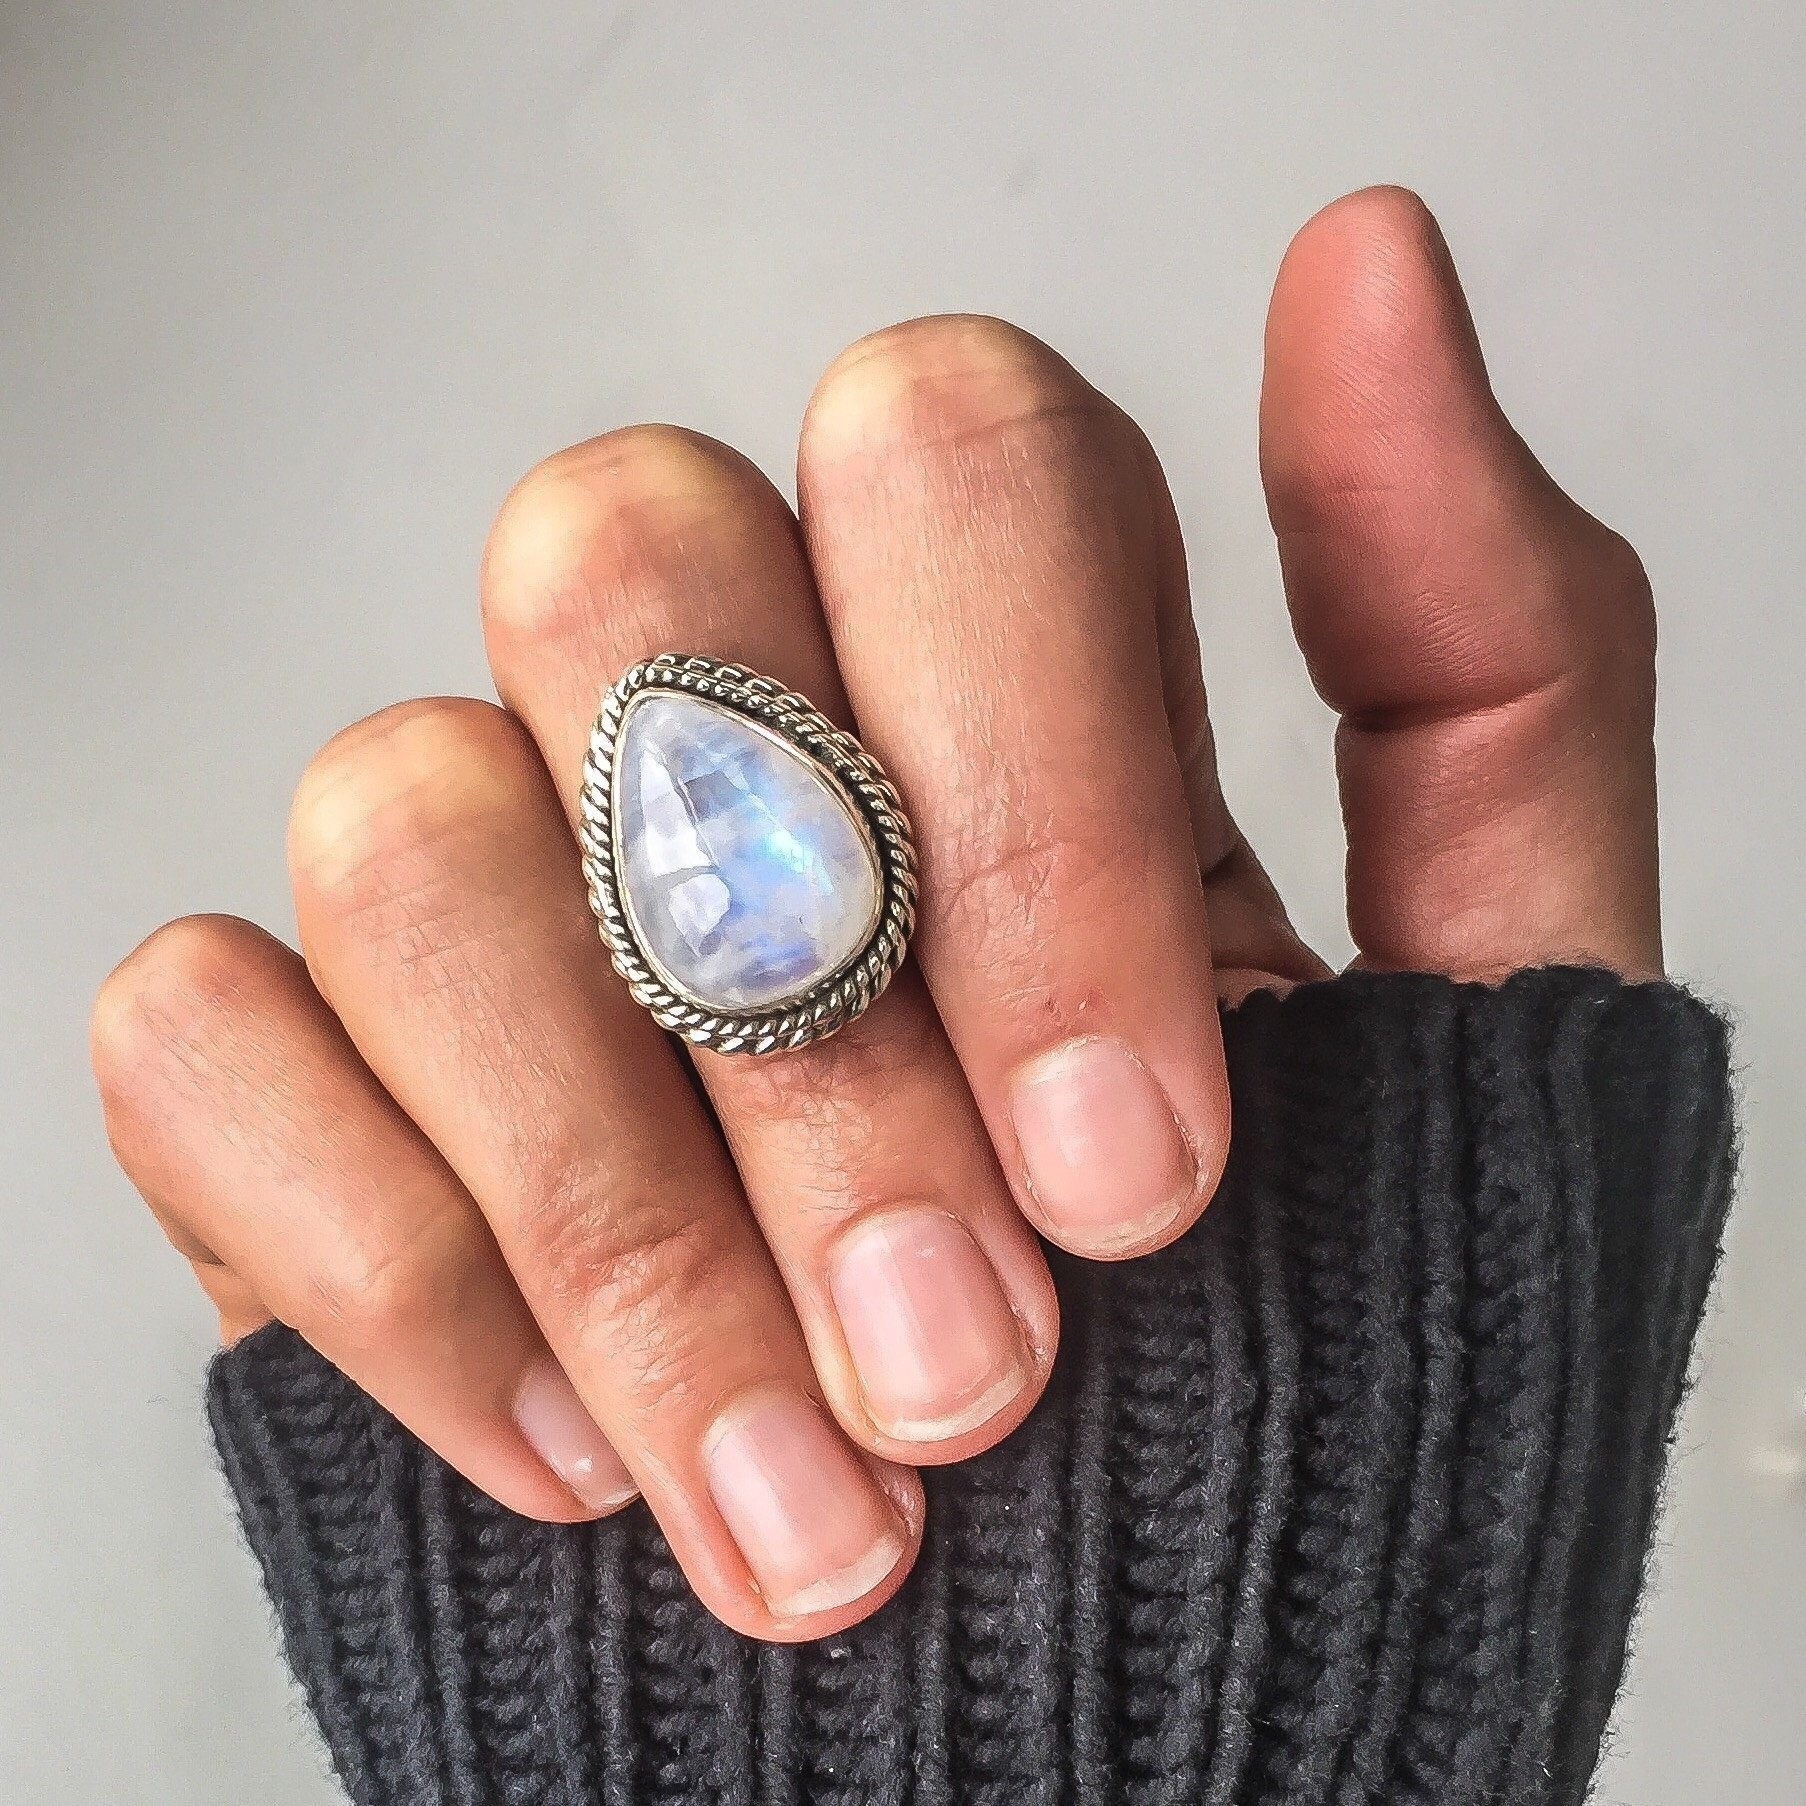 2019 New Big Drill Pear-shaped Moonstone Ring S925 Sliver Exaggerated Peridot Topaz Bizuteria Gemstone Of Jewelry Wedding Ring